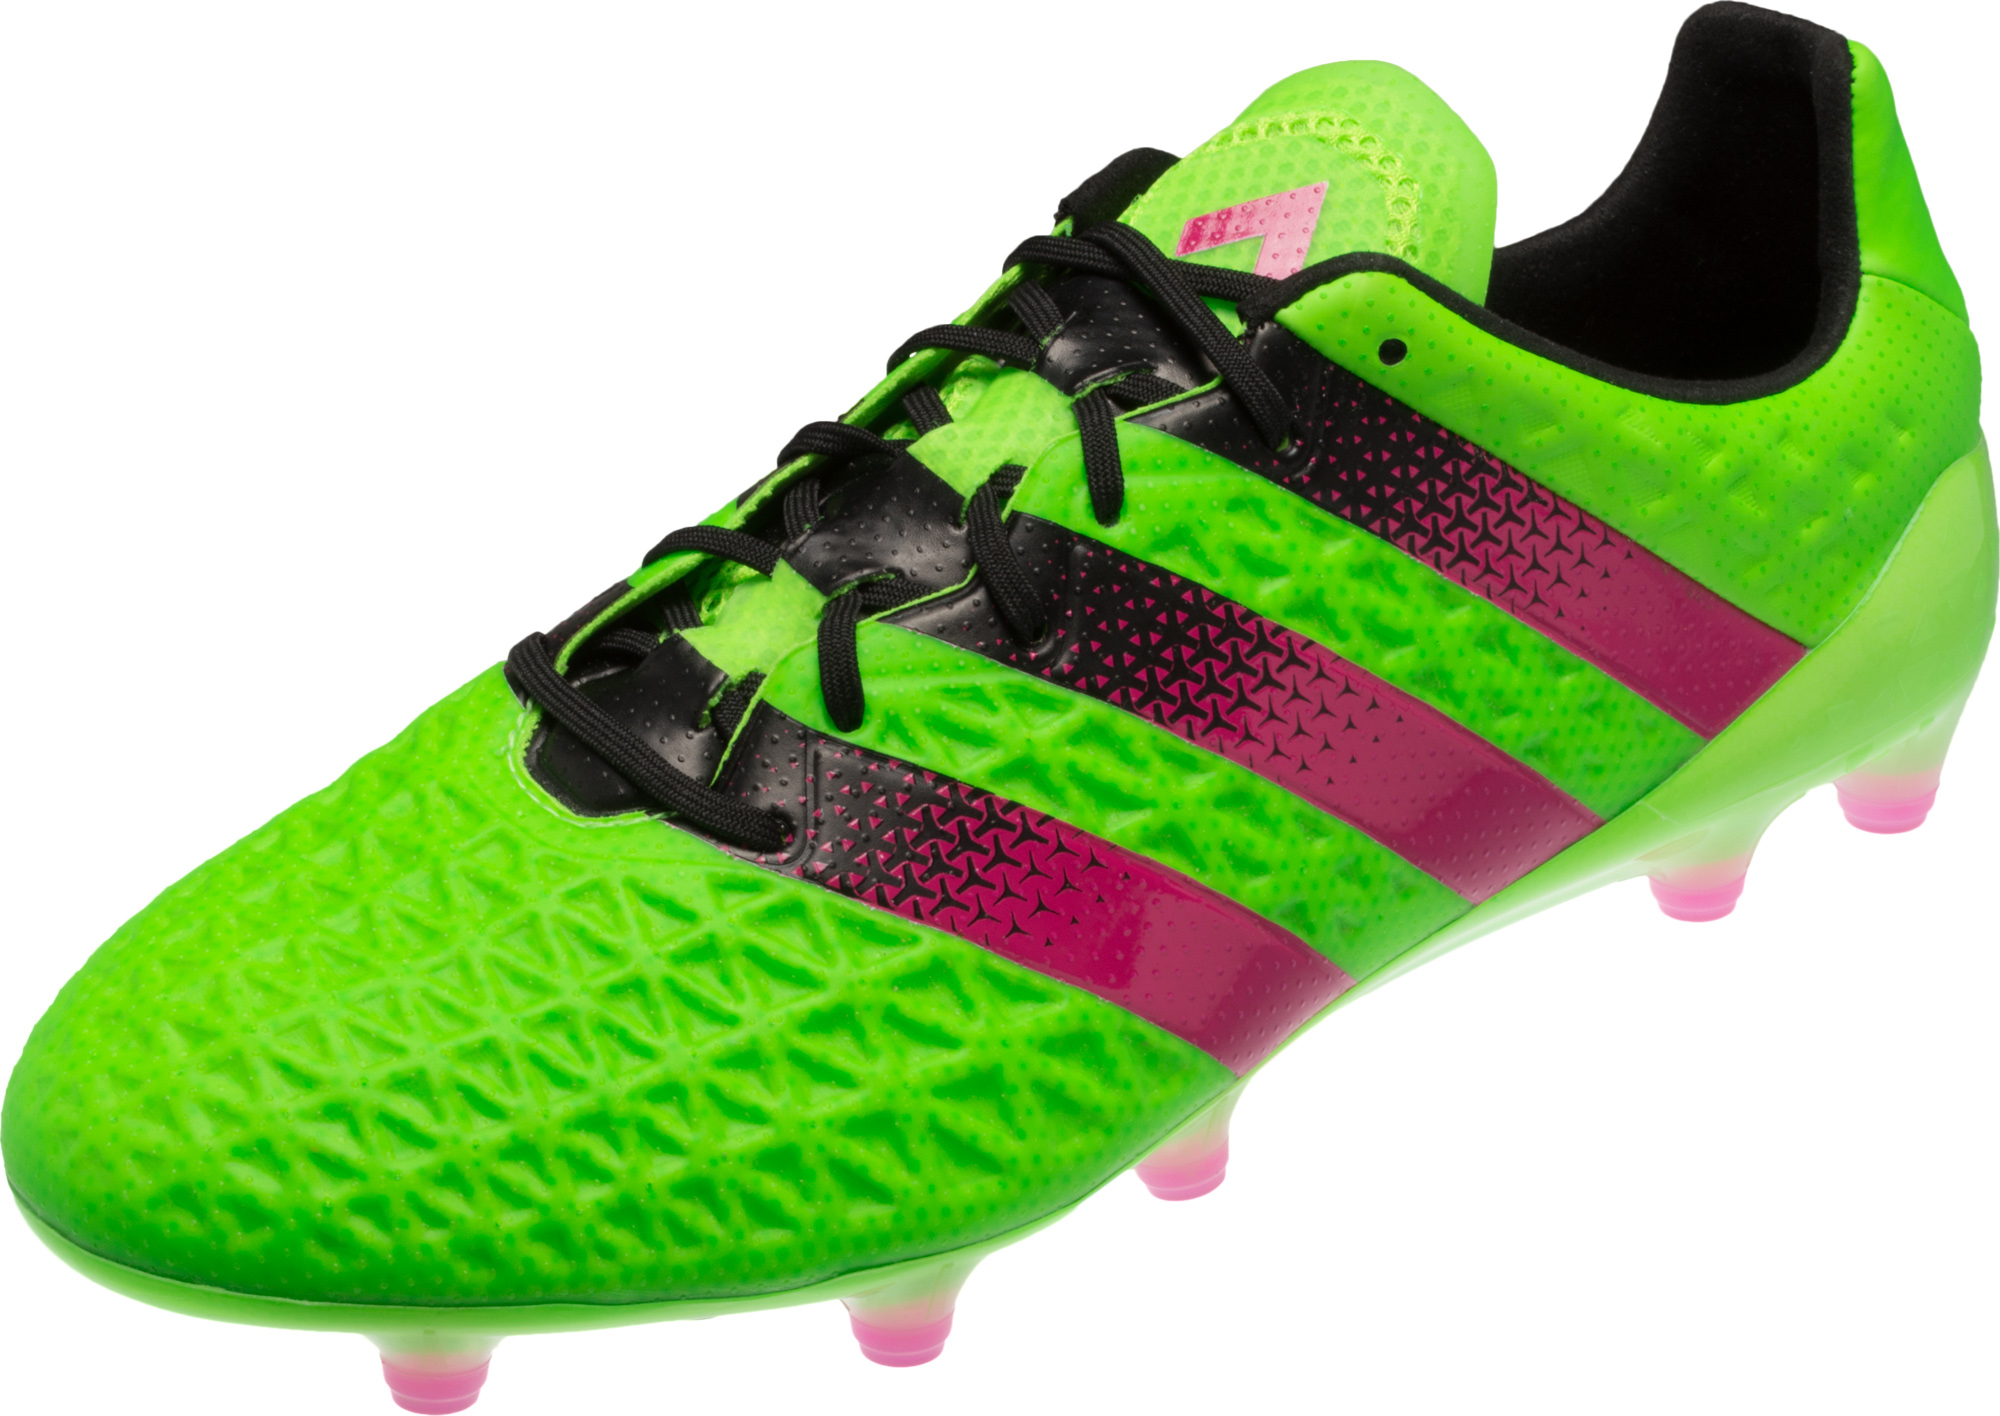 d42c2f0ca adidas ACE 16.1 FG Soccer Cleats - Solar Green Shock Pink - Soccer ...